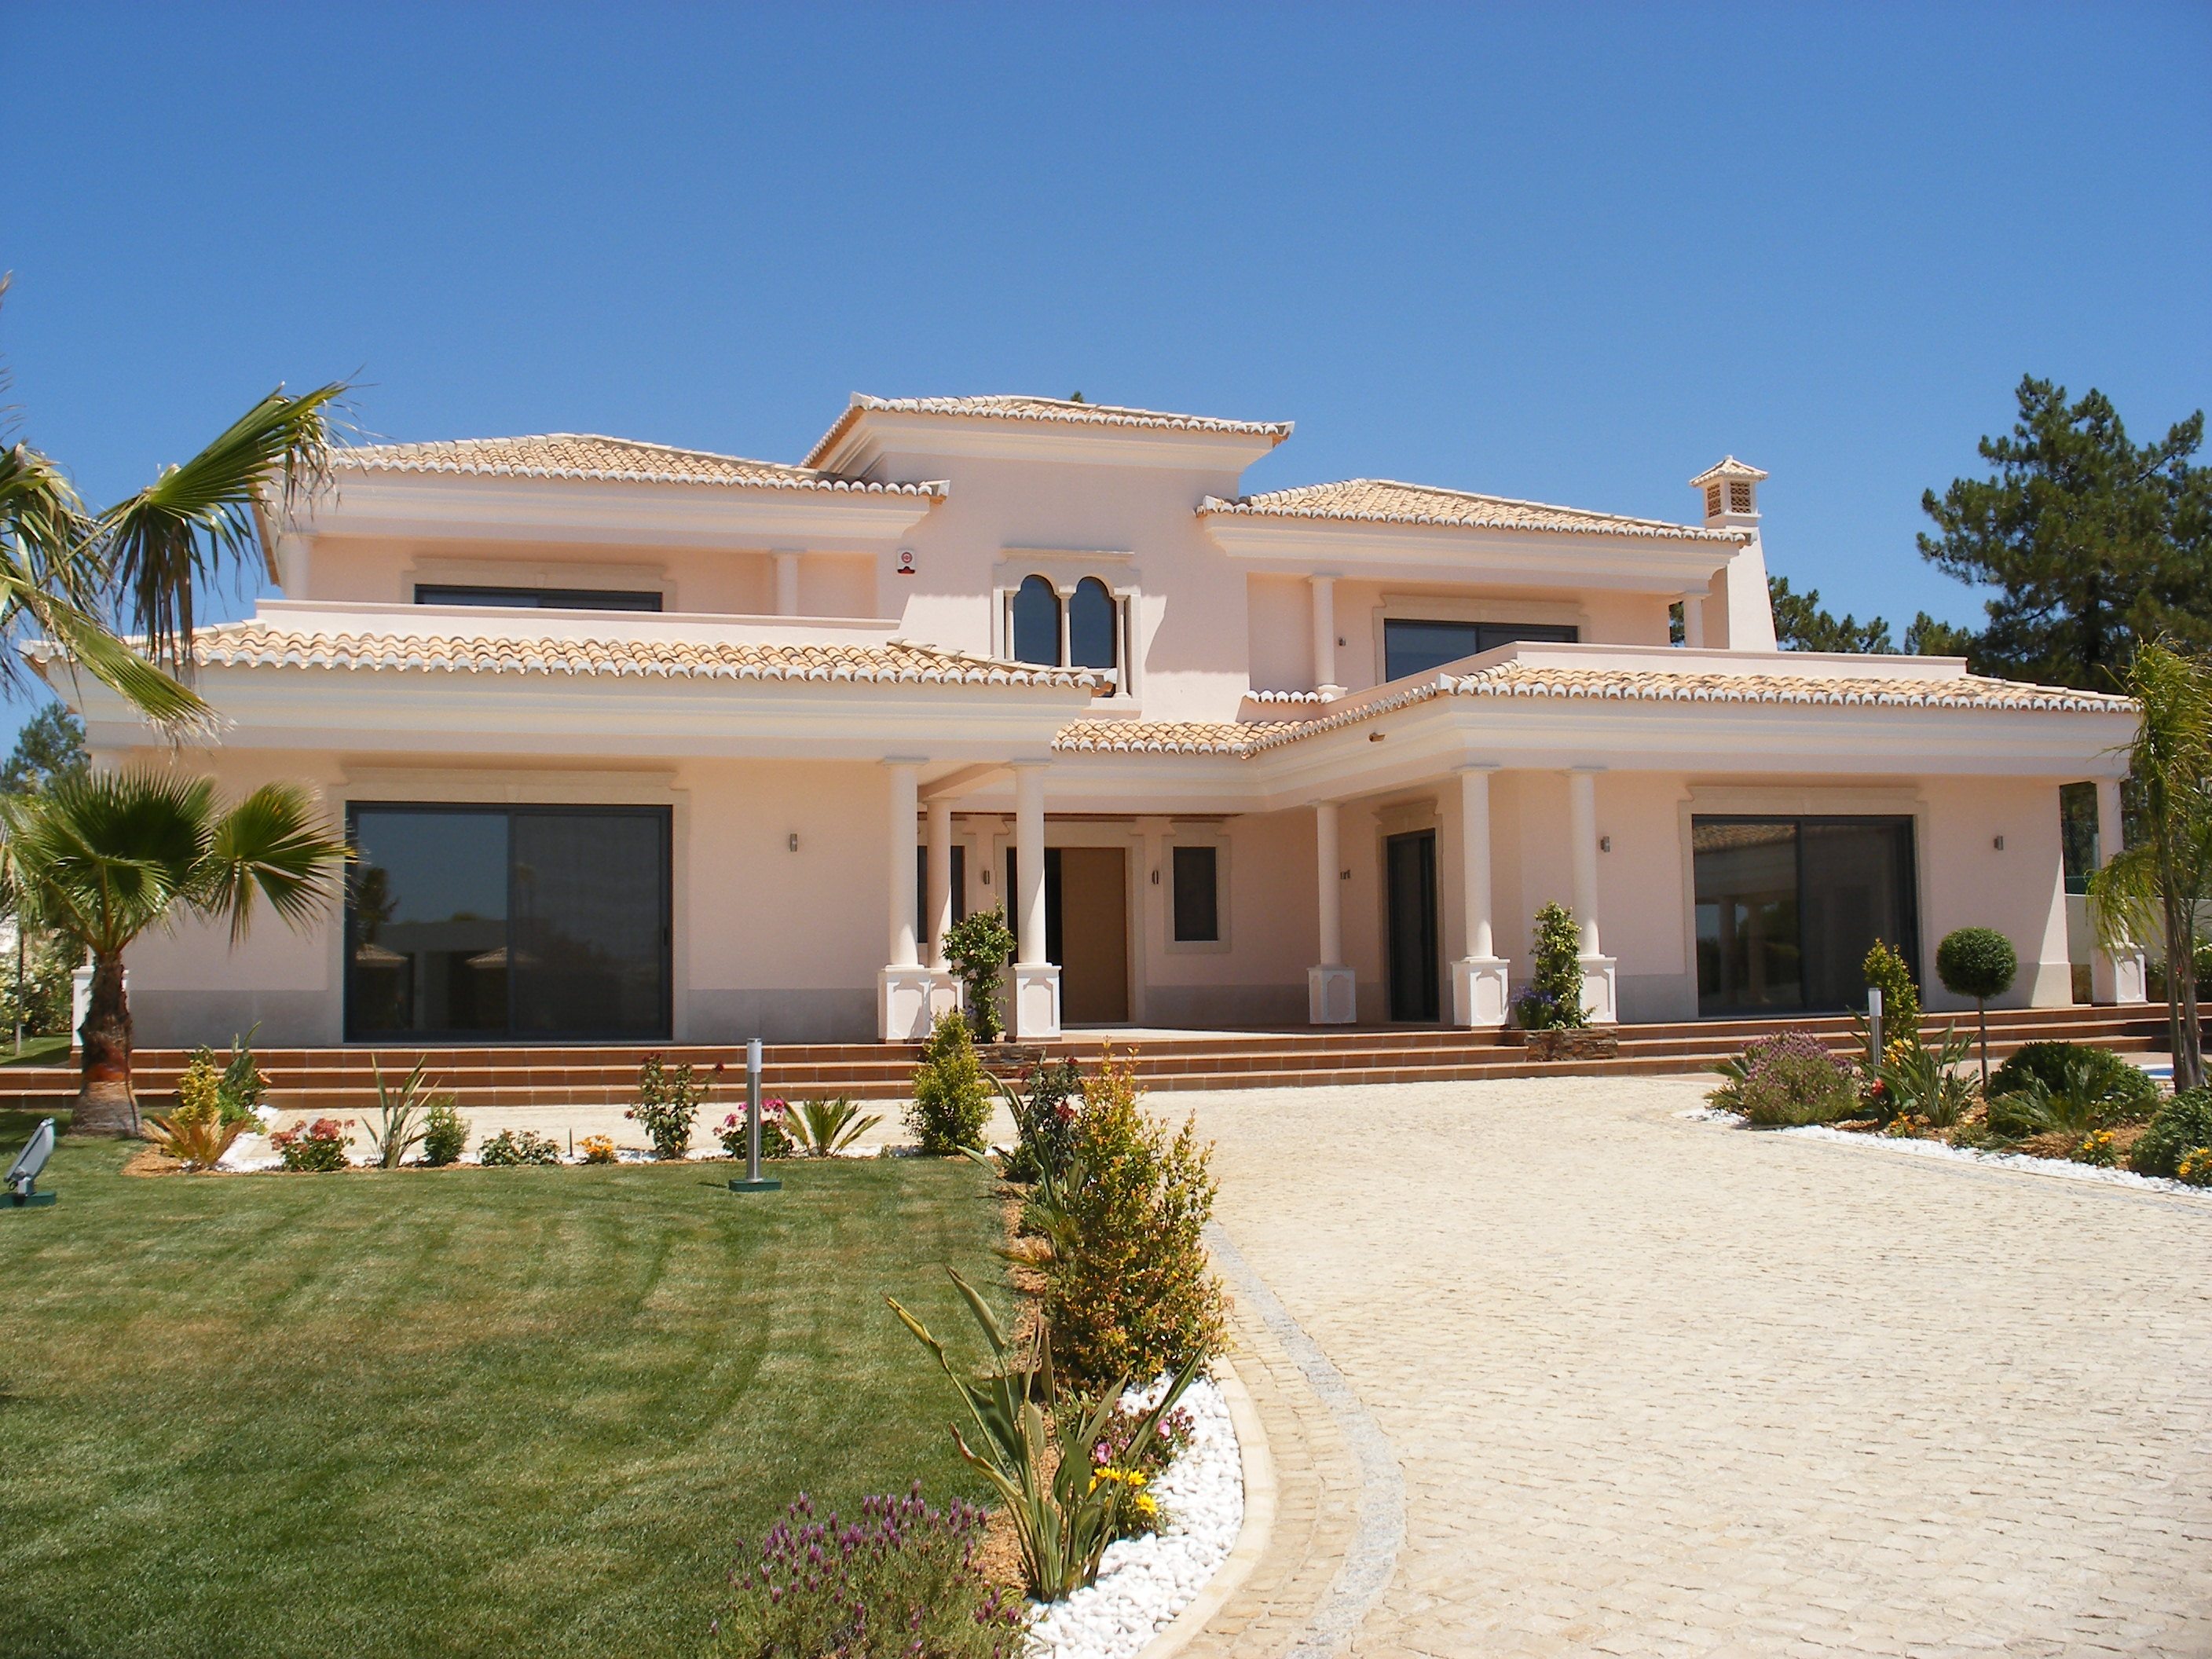 Vale do lobo luxury villas and houses for sale over 1 for Exclusive house